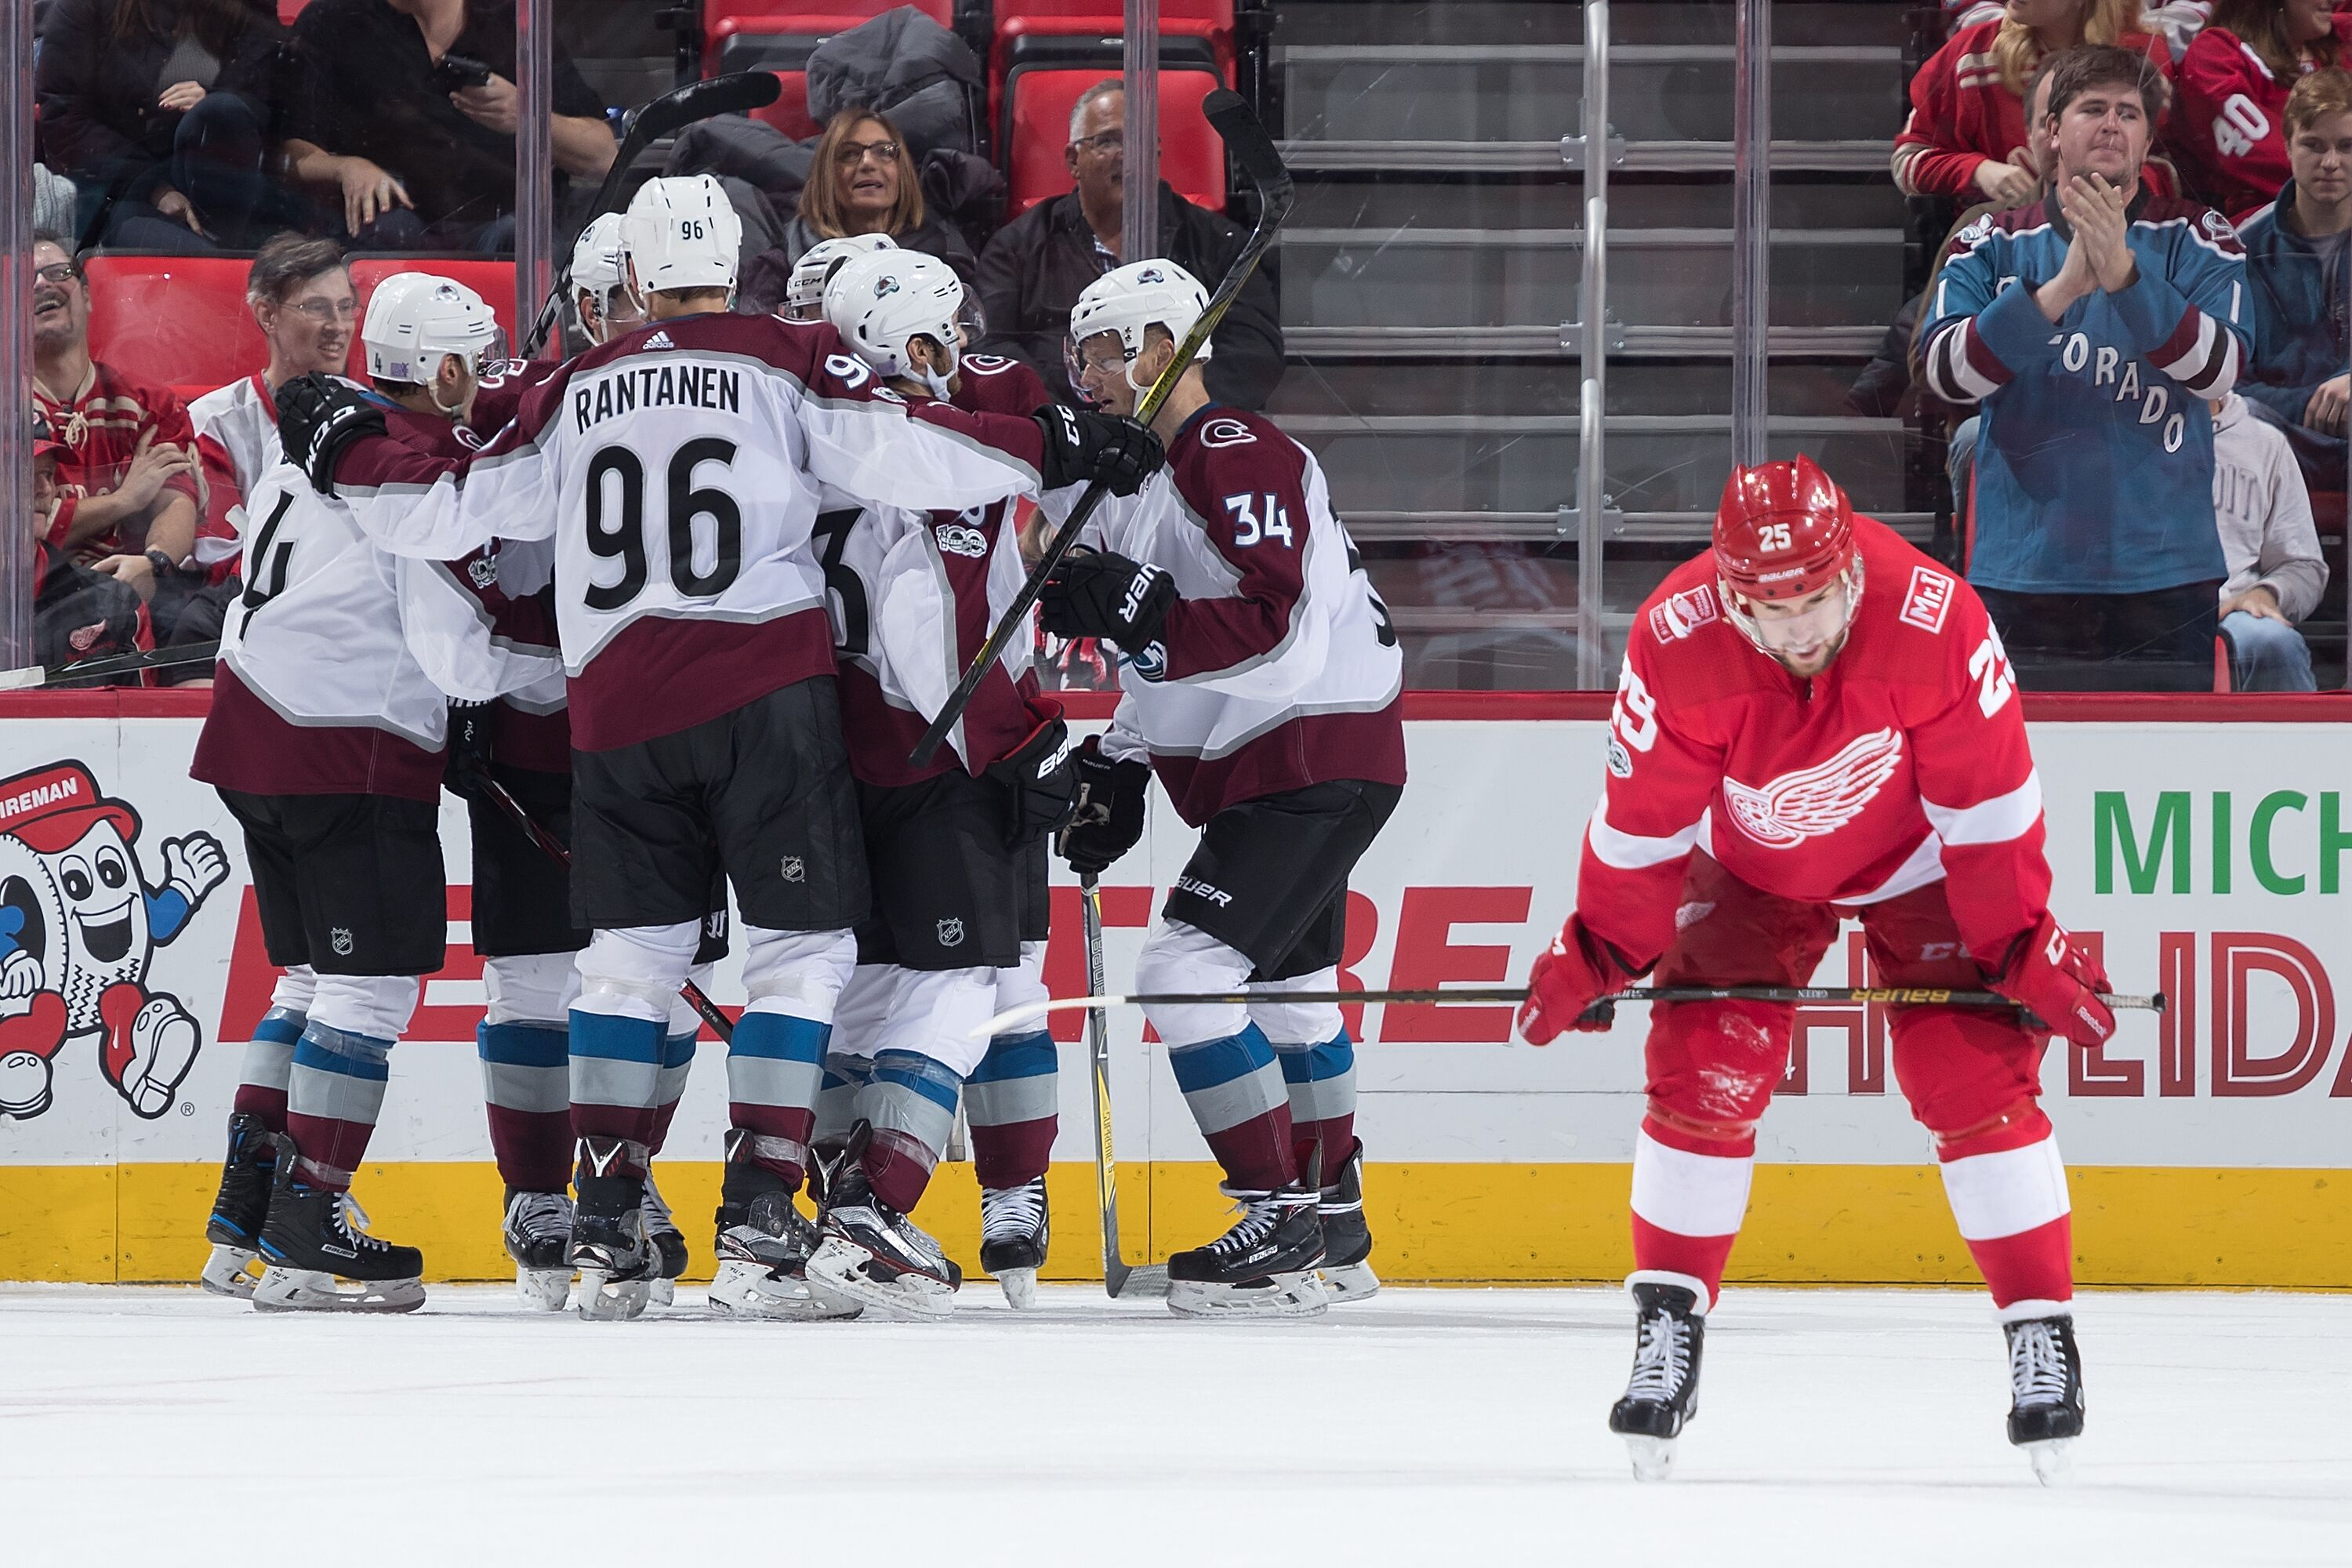 876434142-colorado-avalanche-v-detroit-red-wings.jpg